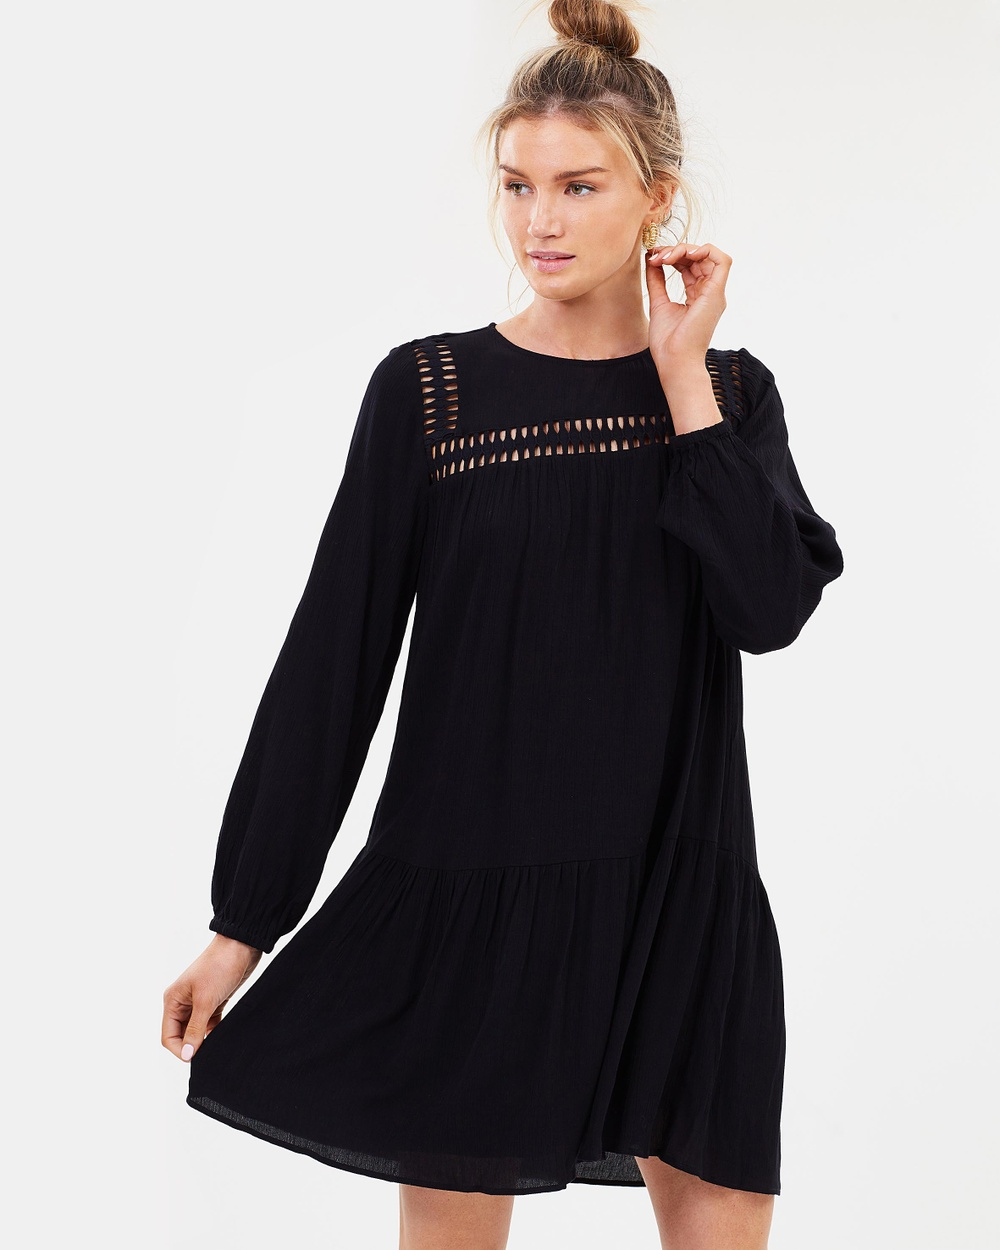 Decjuba Regan Lace Trim Dress Dresses Black Regan Lace Trim Dress